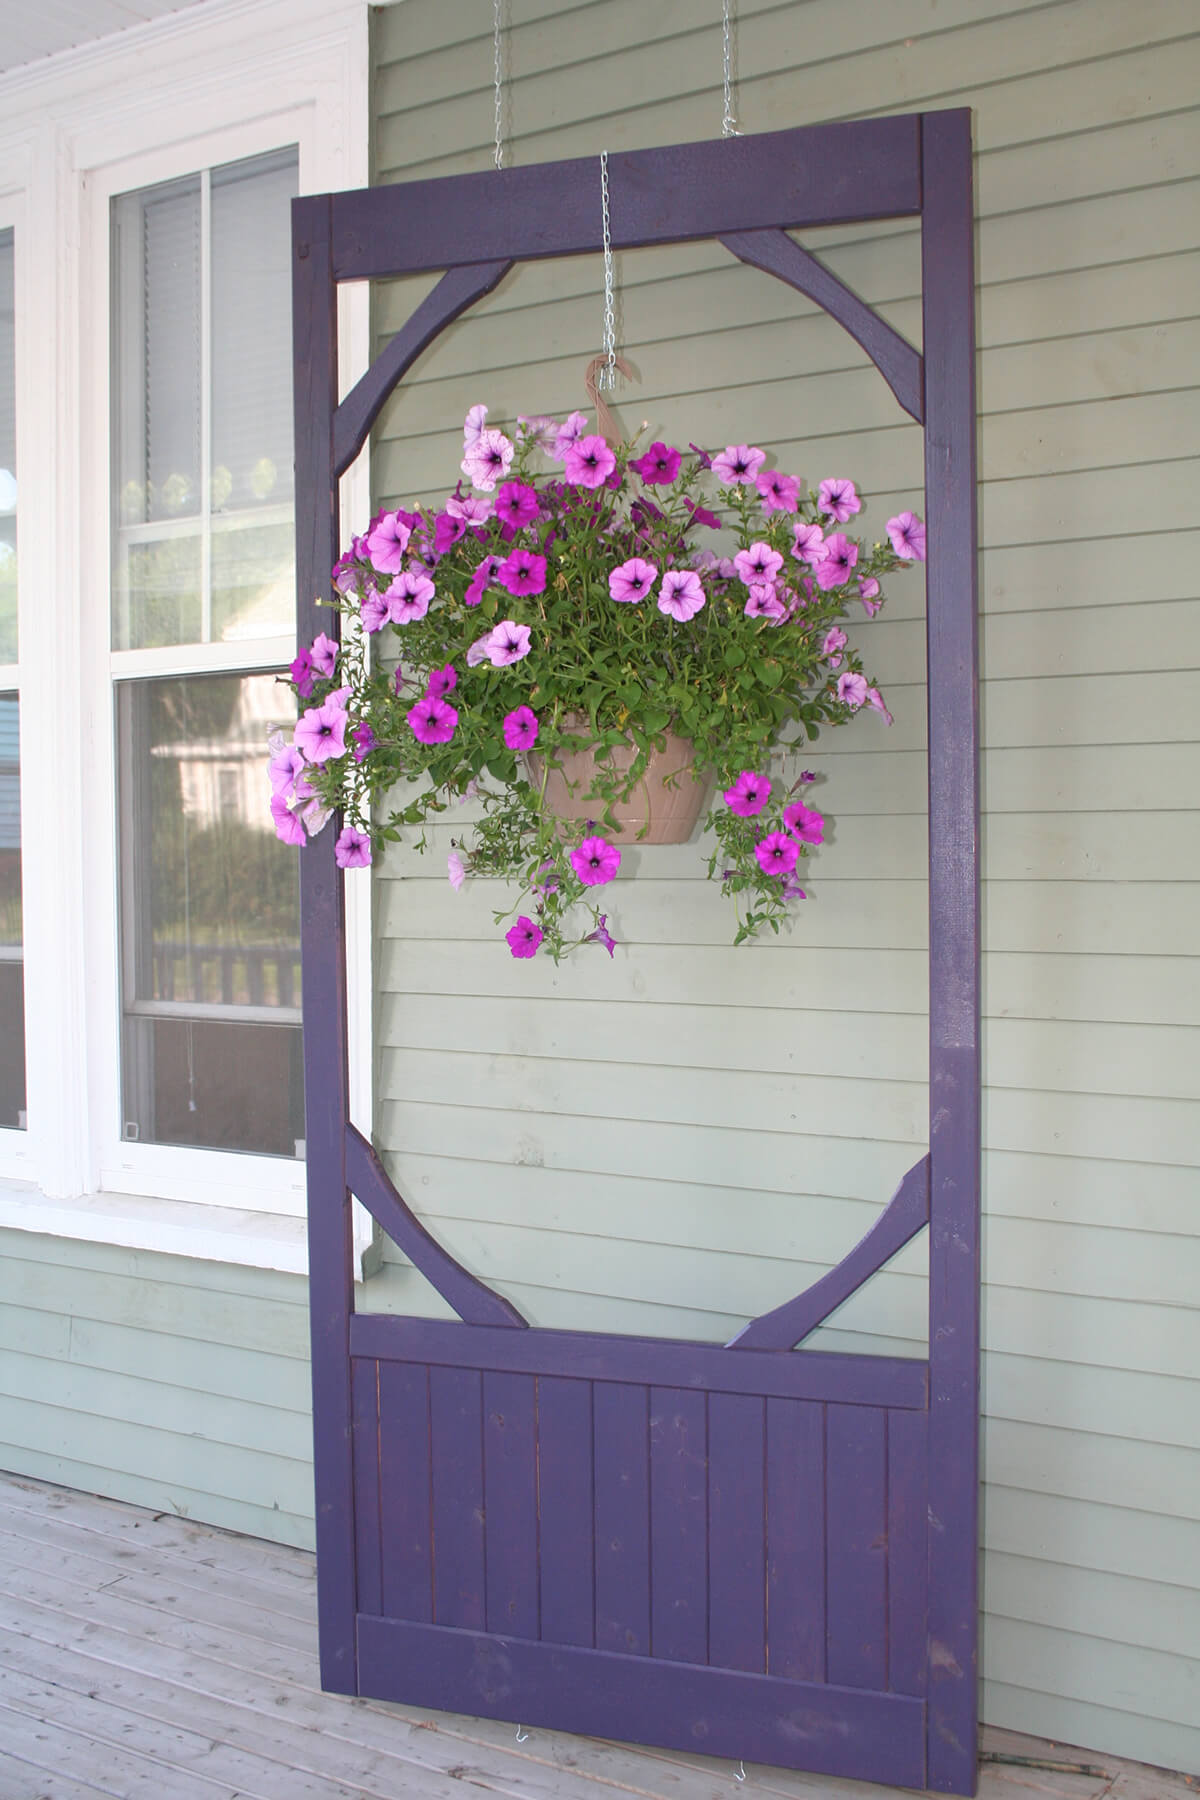 Hanging Screen Door with Bountiful Planter